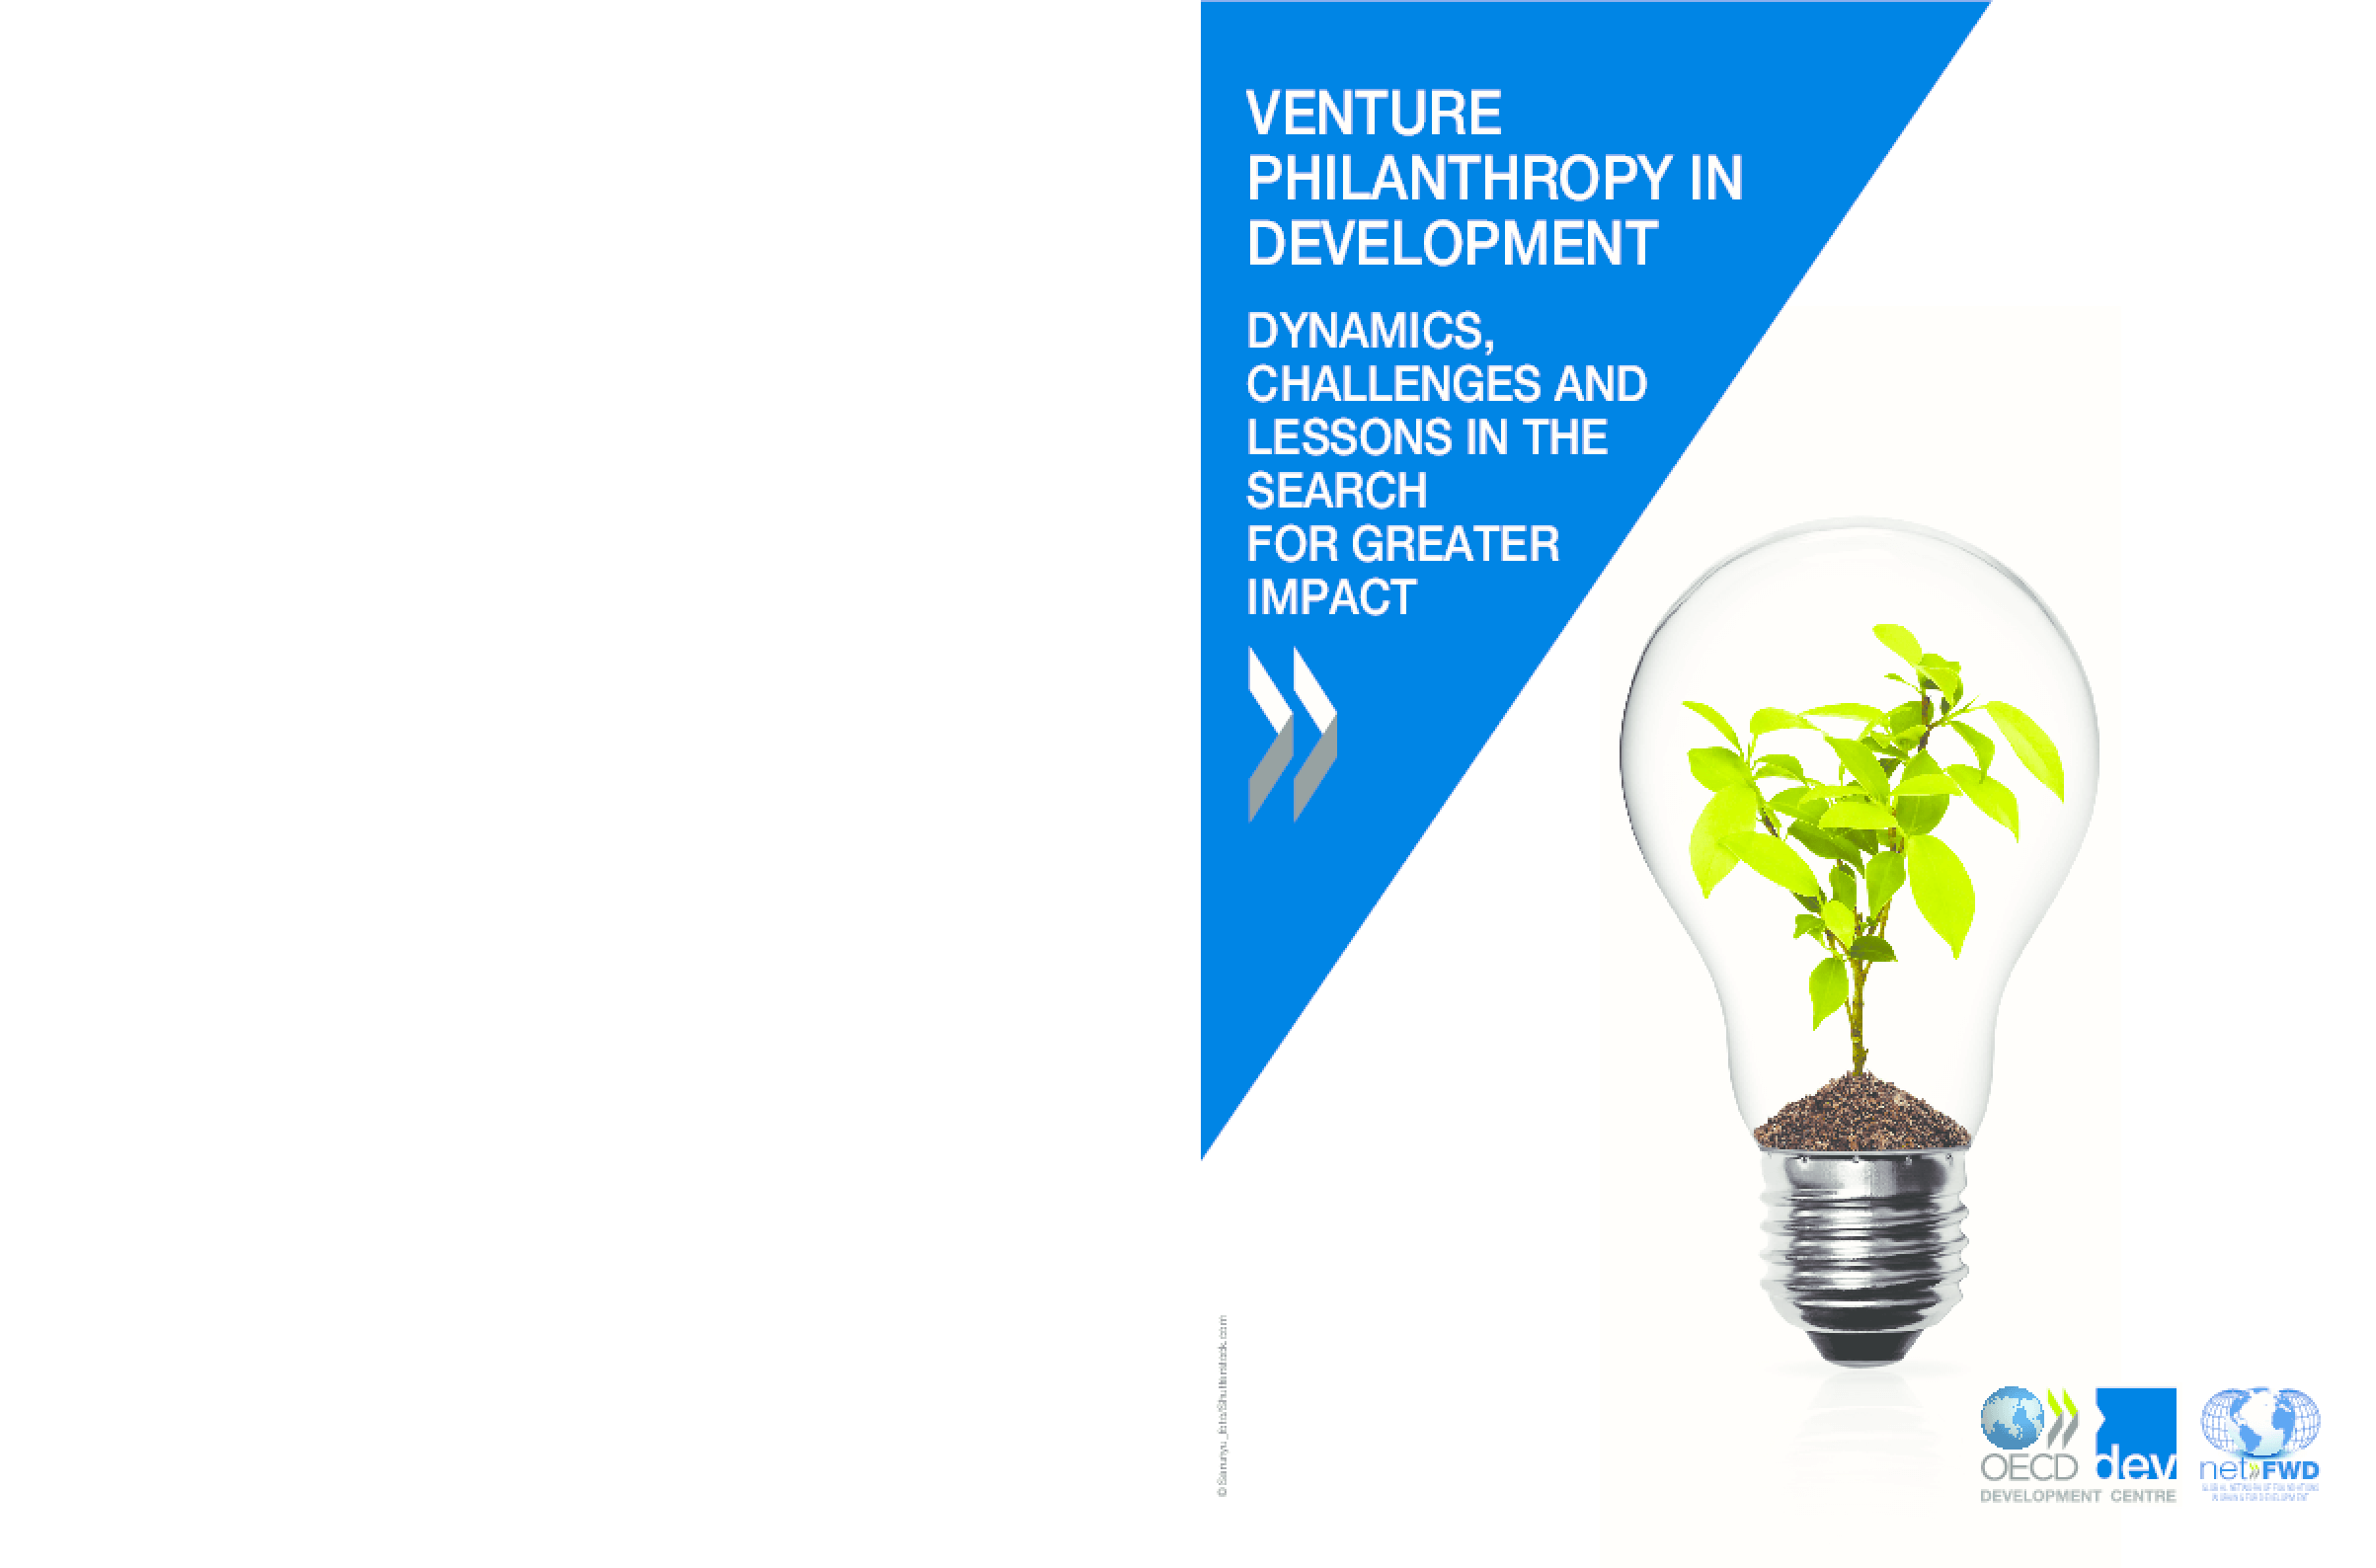 Venture Philanthropy In Development: Dynamics, Challenges and Lessons in the Search for Greater Impact